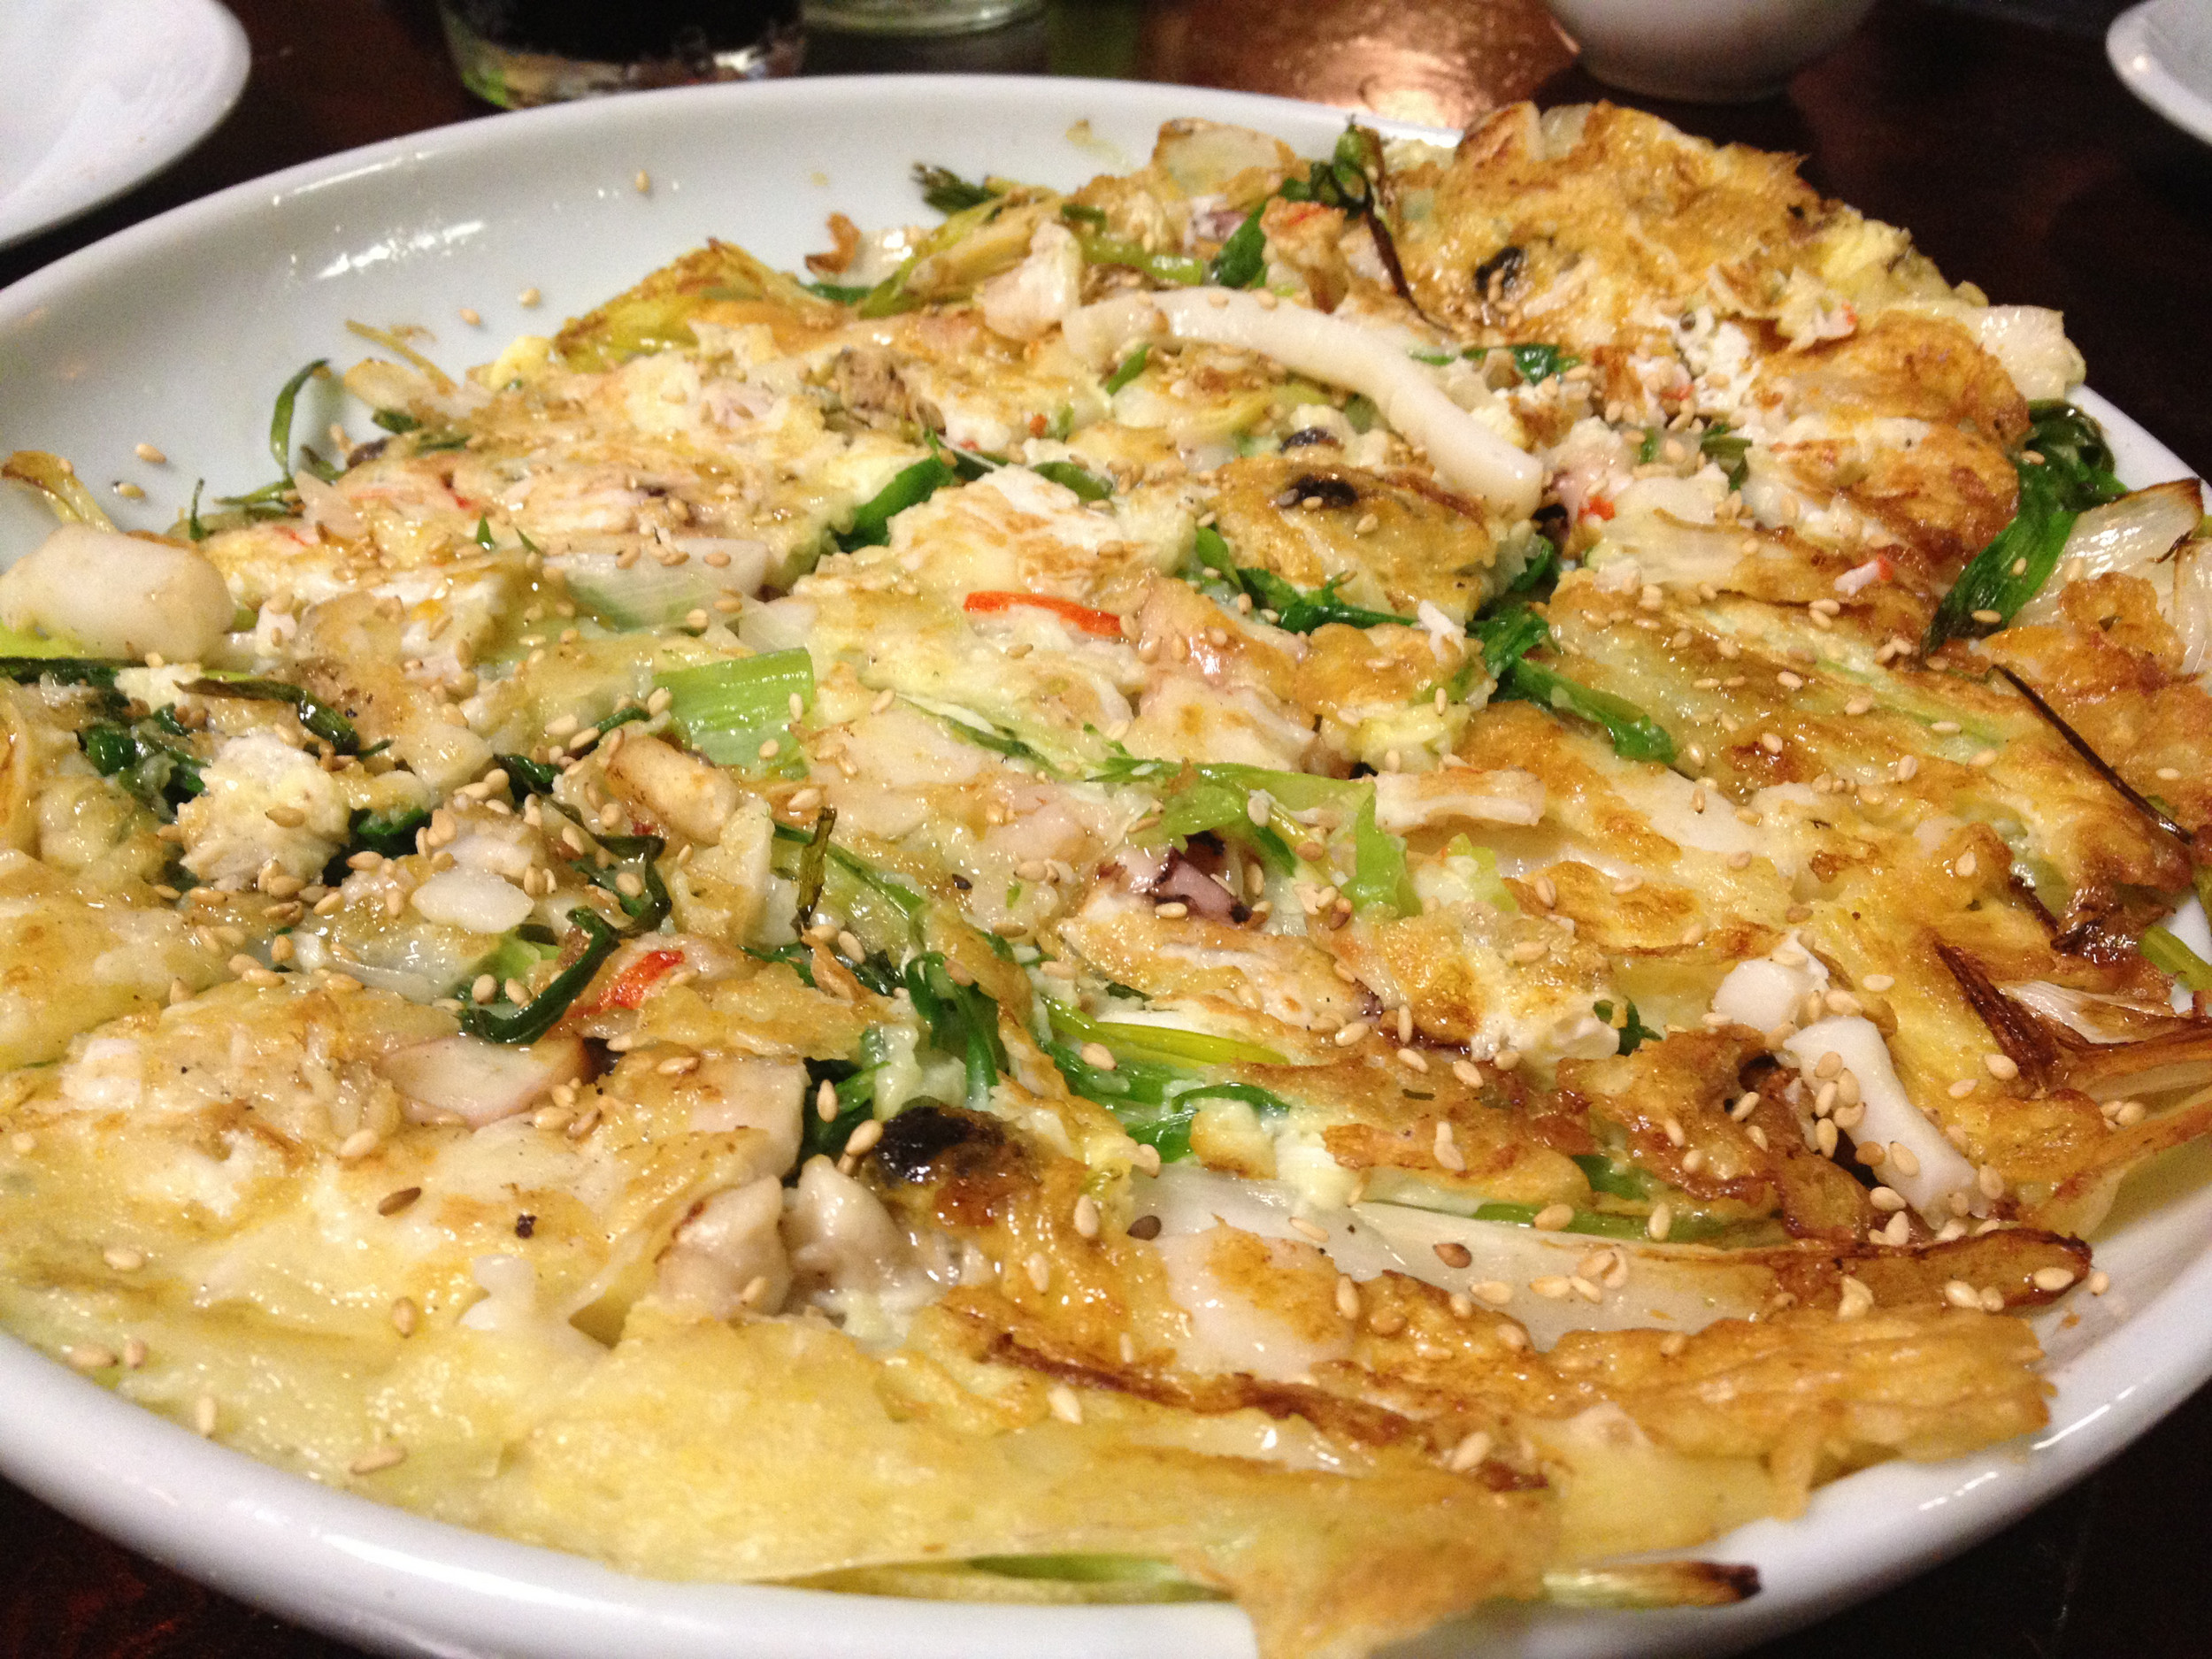 The seafood pancake at Hon Korean.